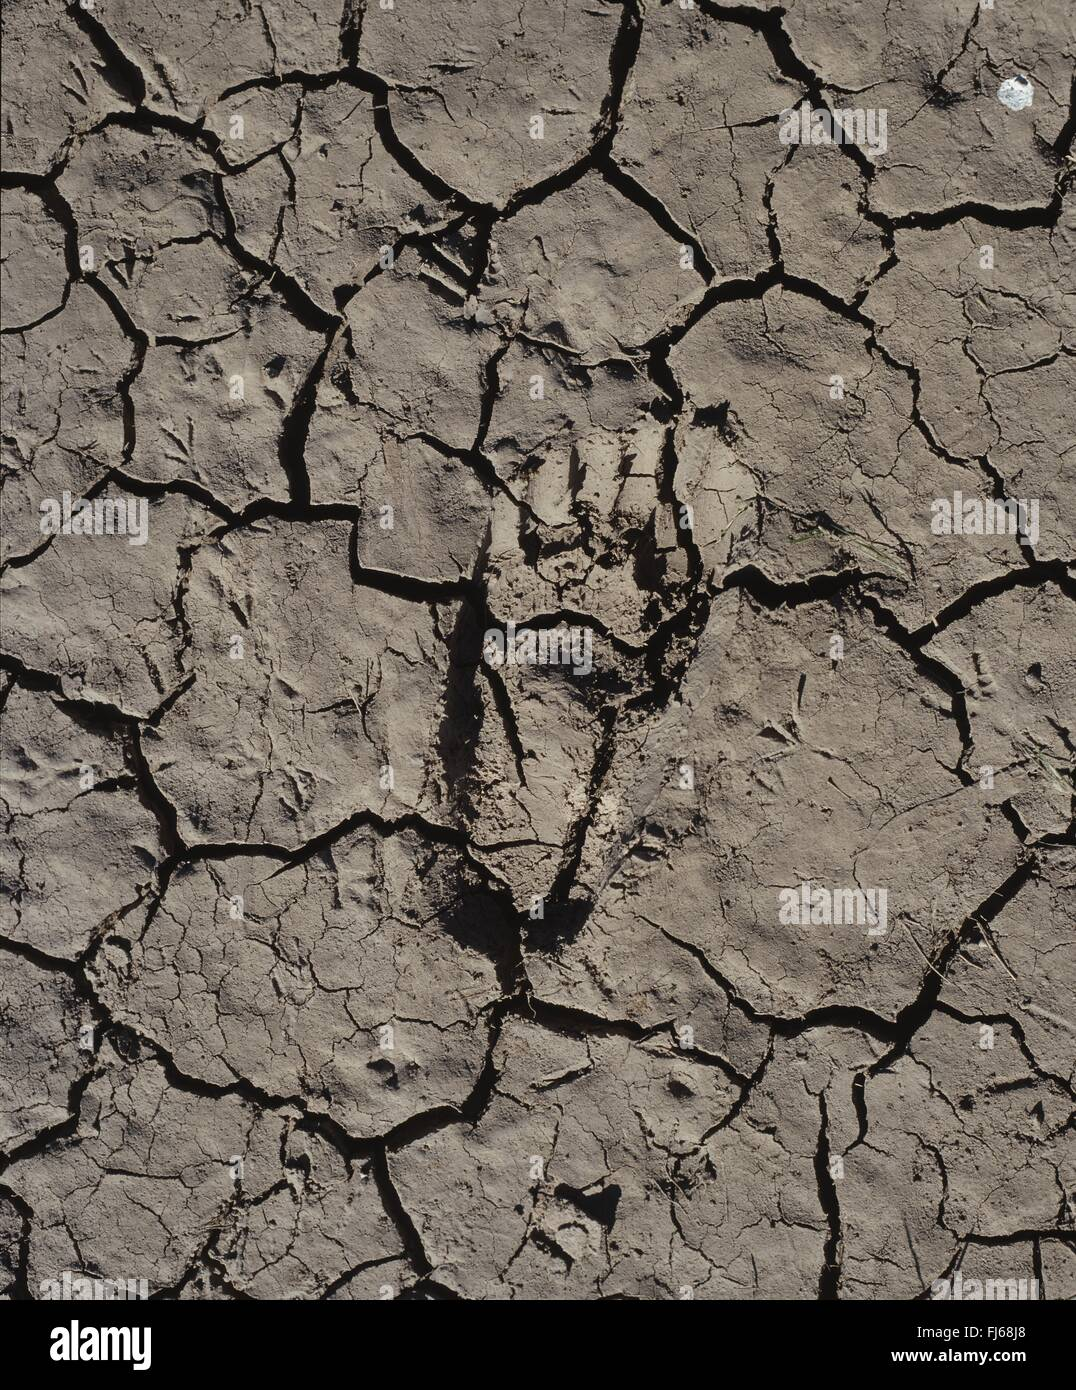 human foot print in dried riverbed, Australia, Outback, Bourke - Stock Image